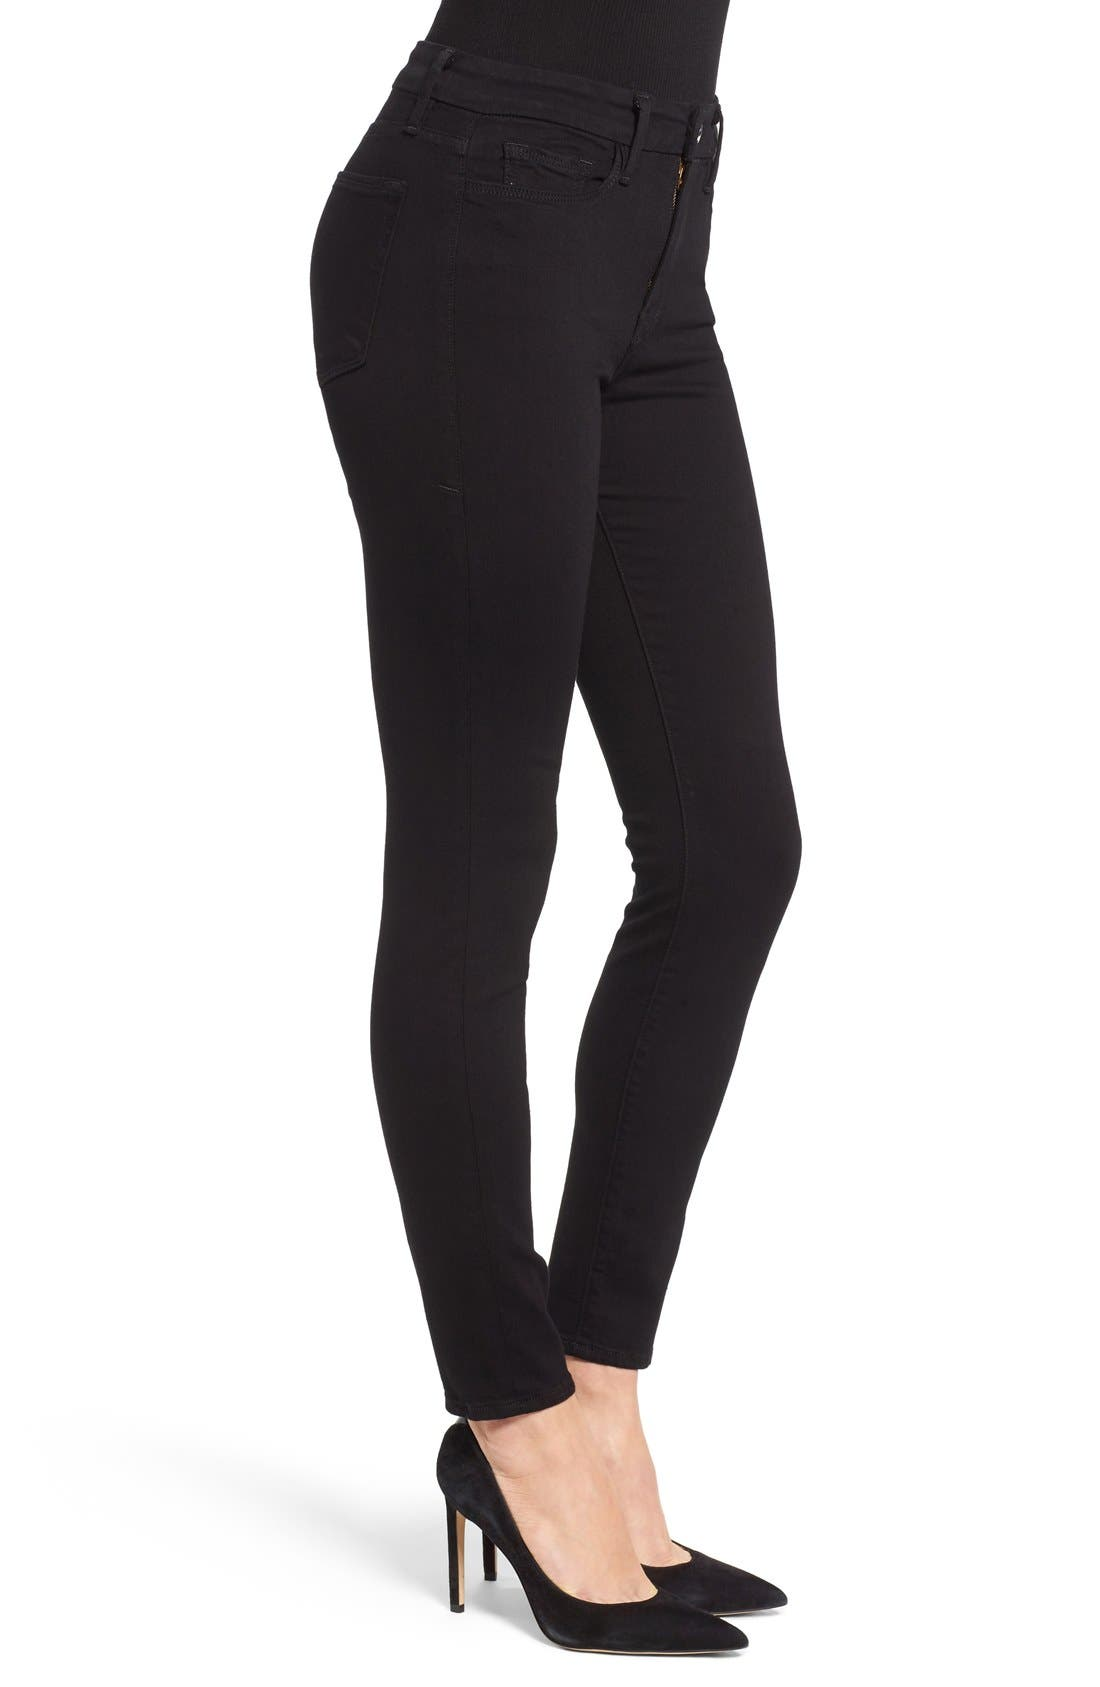 Alternate Image 3  - Good American Good Legs High Rise Skinny Jeans (Black 001)